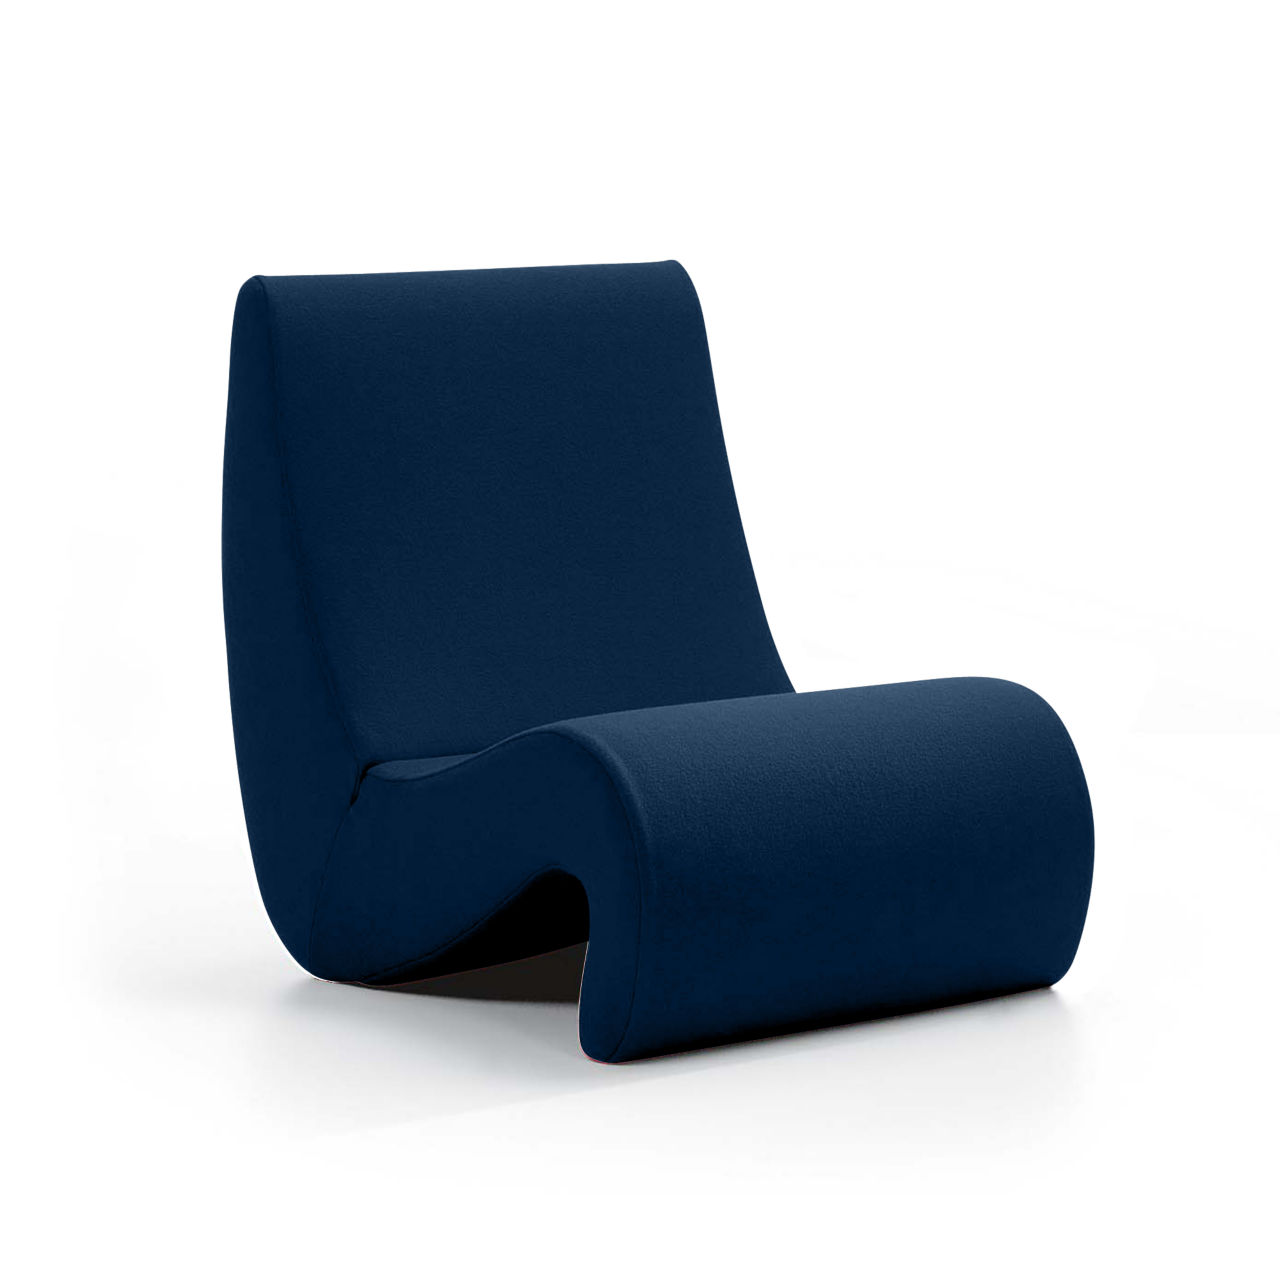 Amoebe Chair in Matte Blue Highback by Vitra